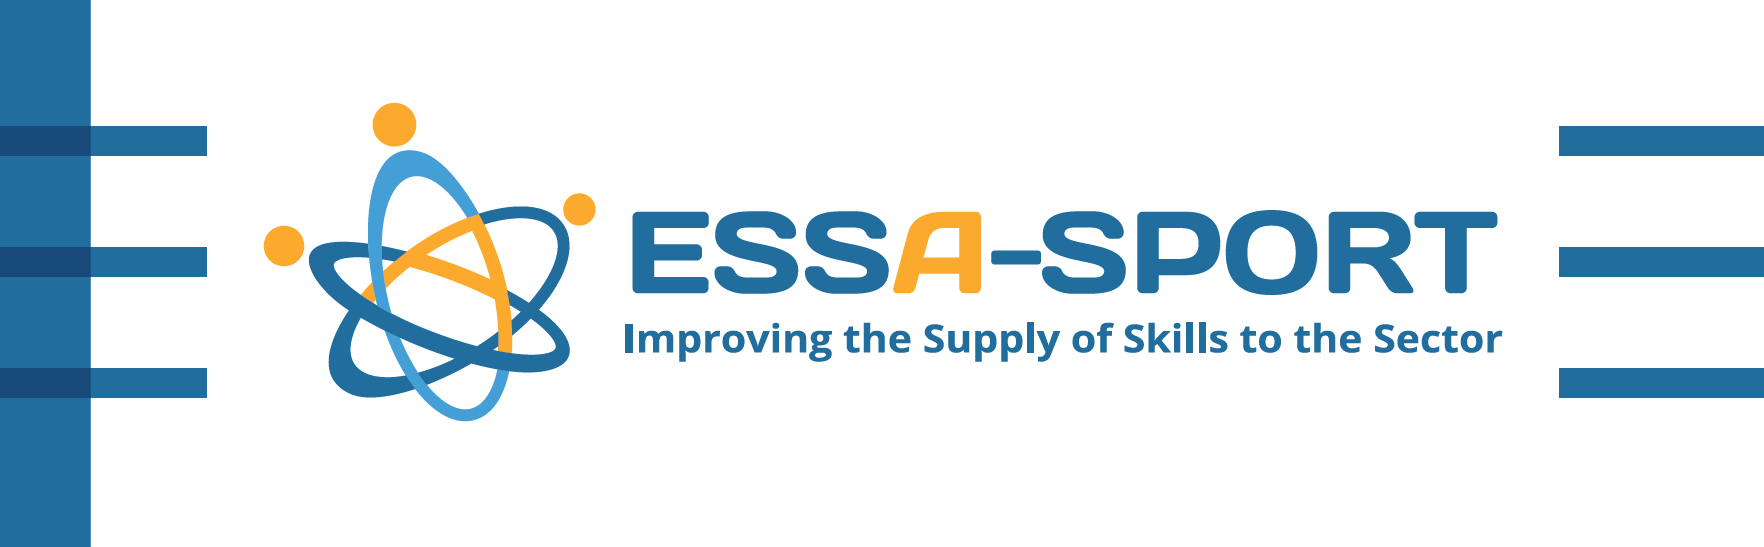 The European sport labour market analysed through the ESSA-Sport project